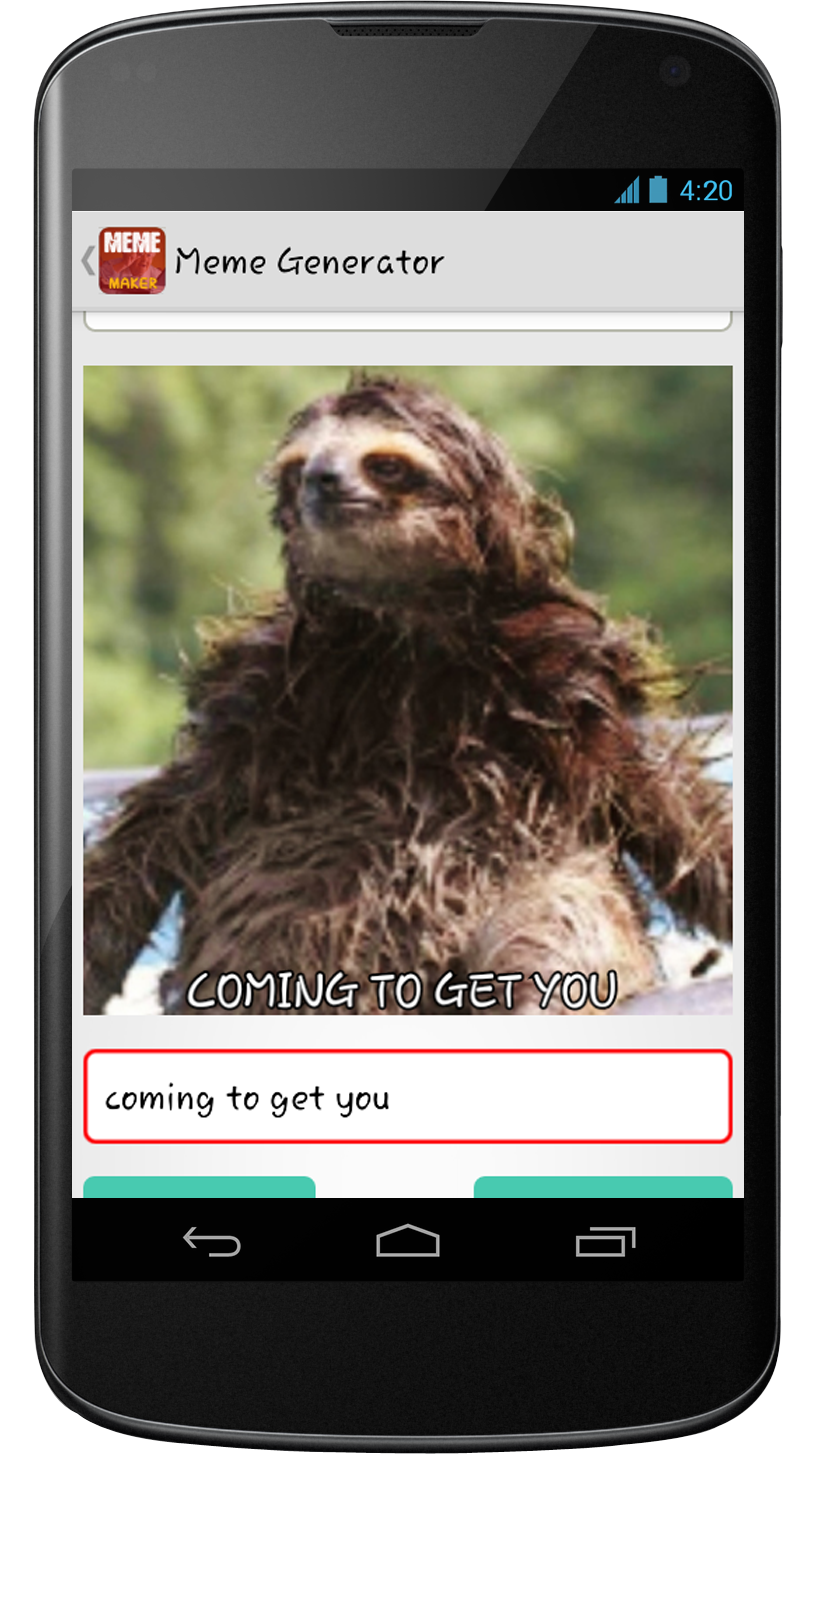 Meme Generator Android App - Mobile App Development, Android App